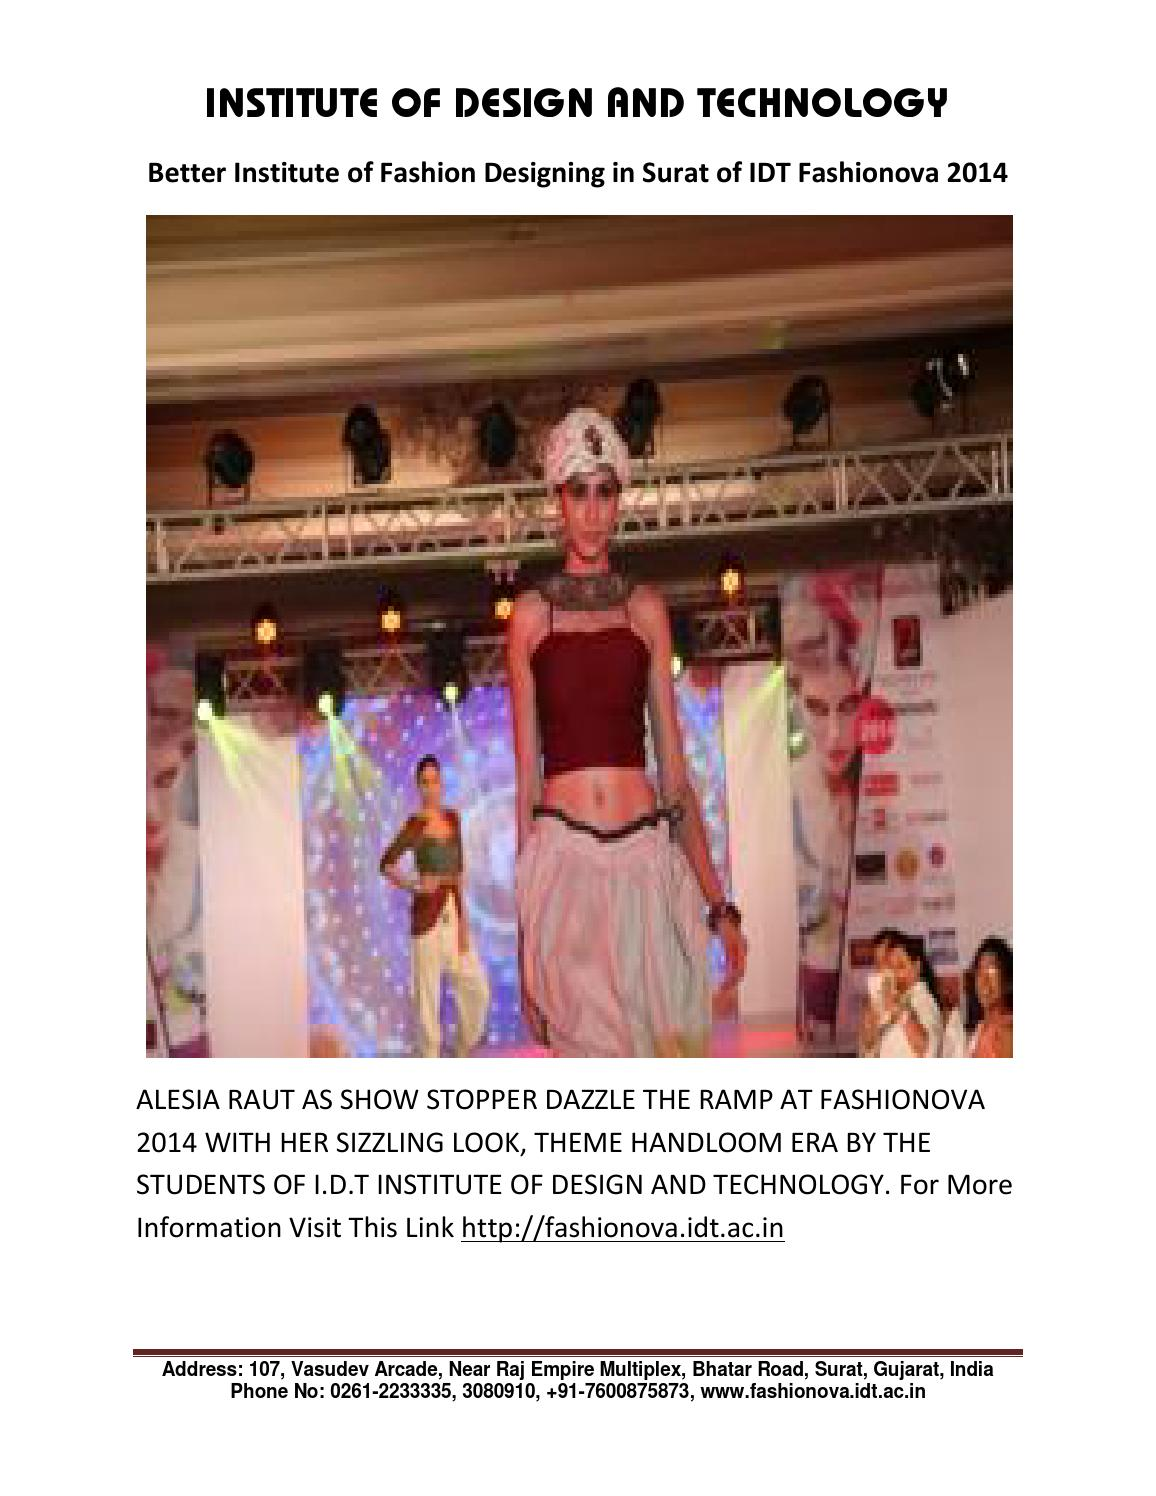 Better Institute Of Fashion Designing In Surat Of Idt Fashionova 2014 By Idt Institute Issuu